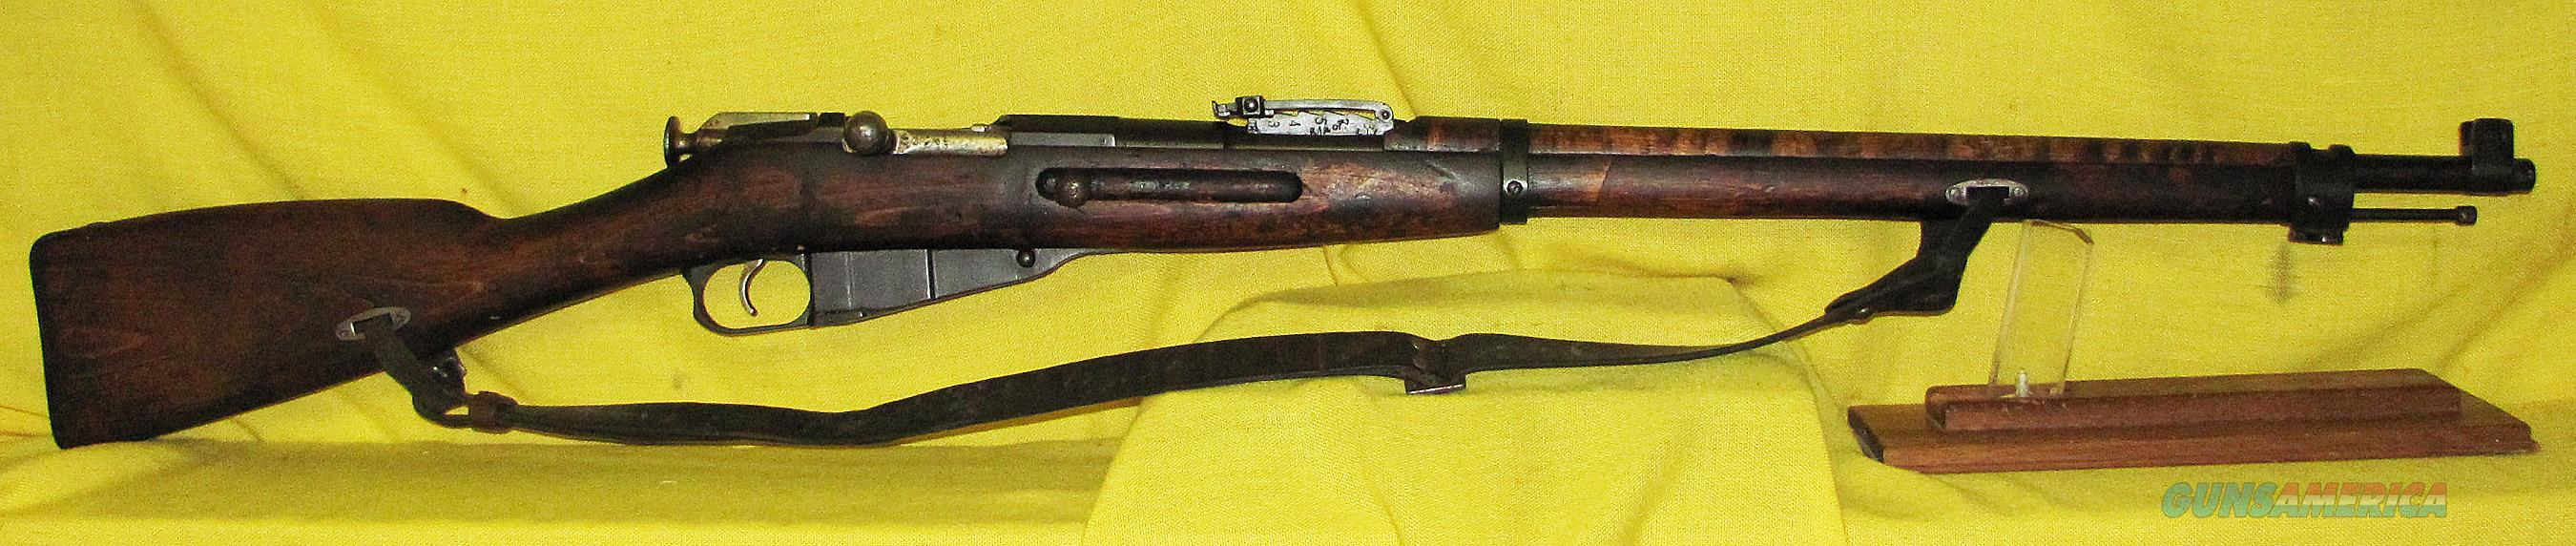 MOSIN-NAGANT M24  Guns > Rifles > Mosin-Nagant Rifles/Carbines